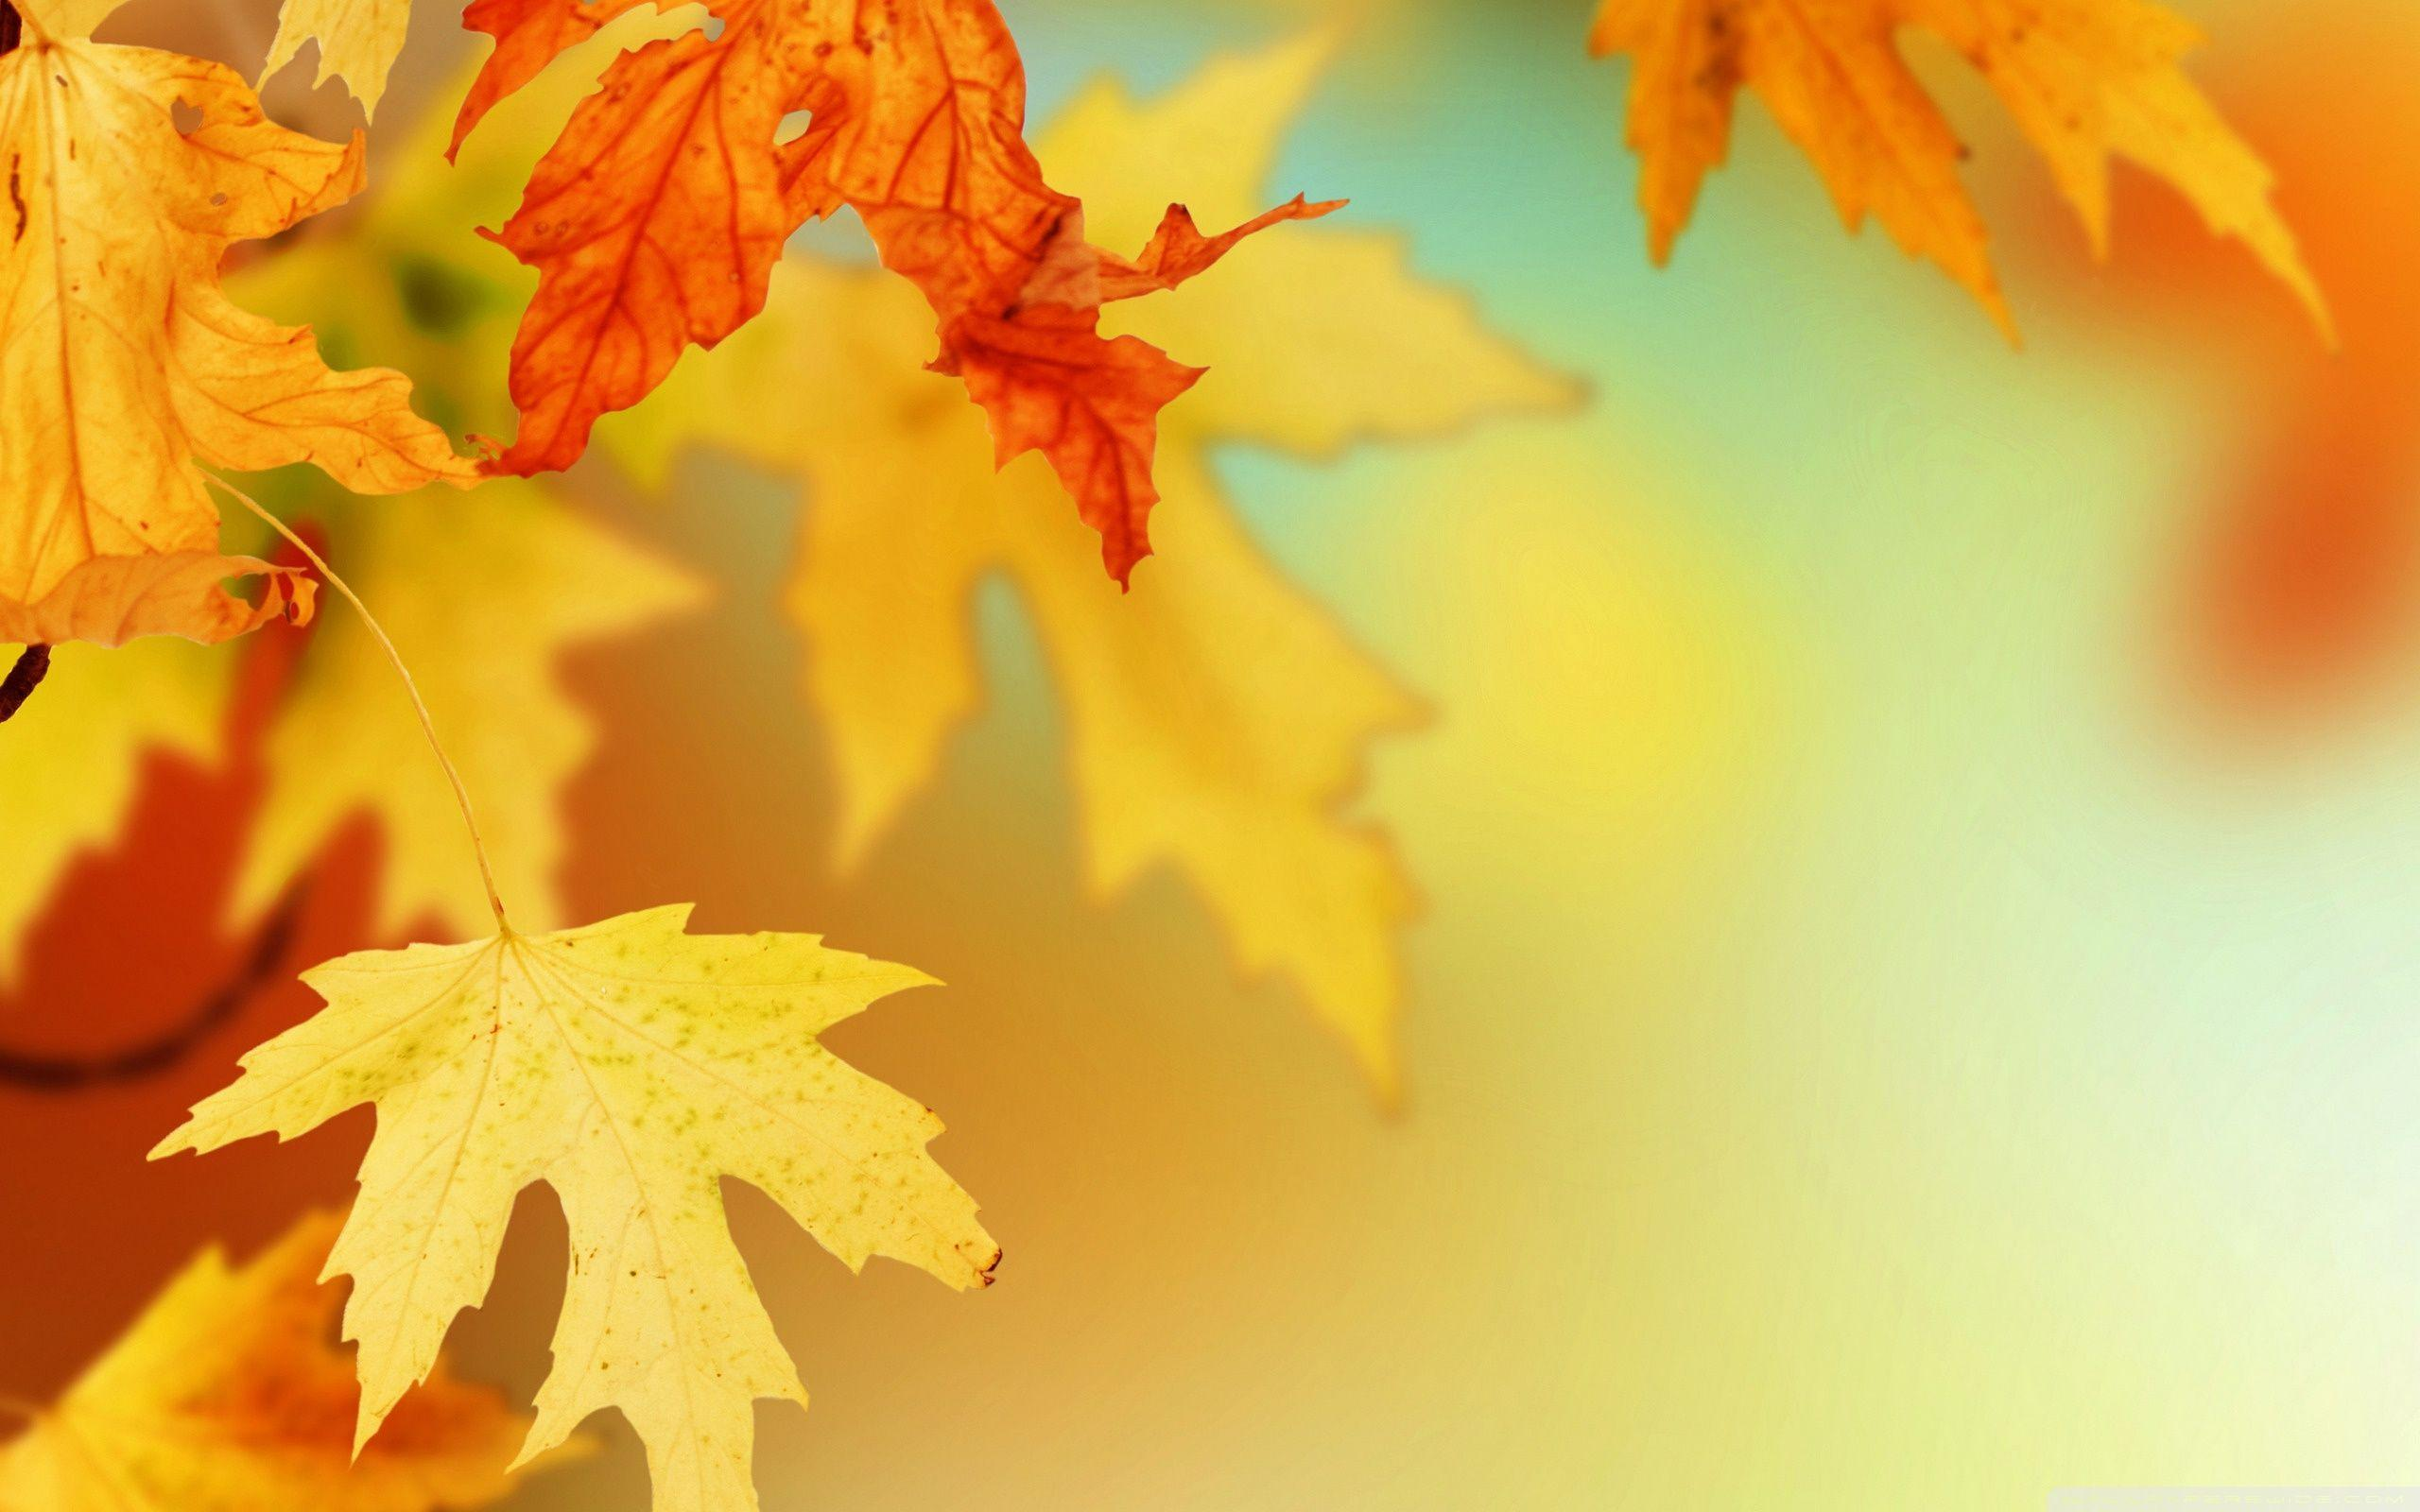 autumn leaves wallpapers desktop background imageswall